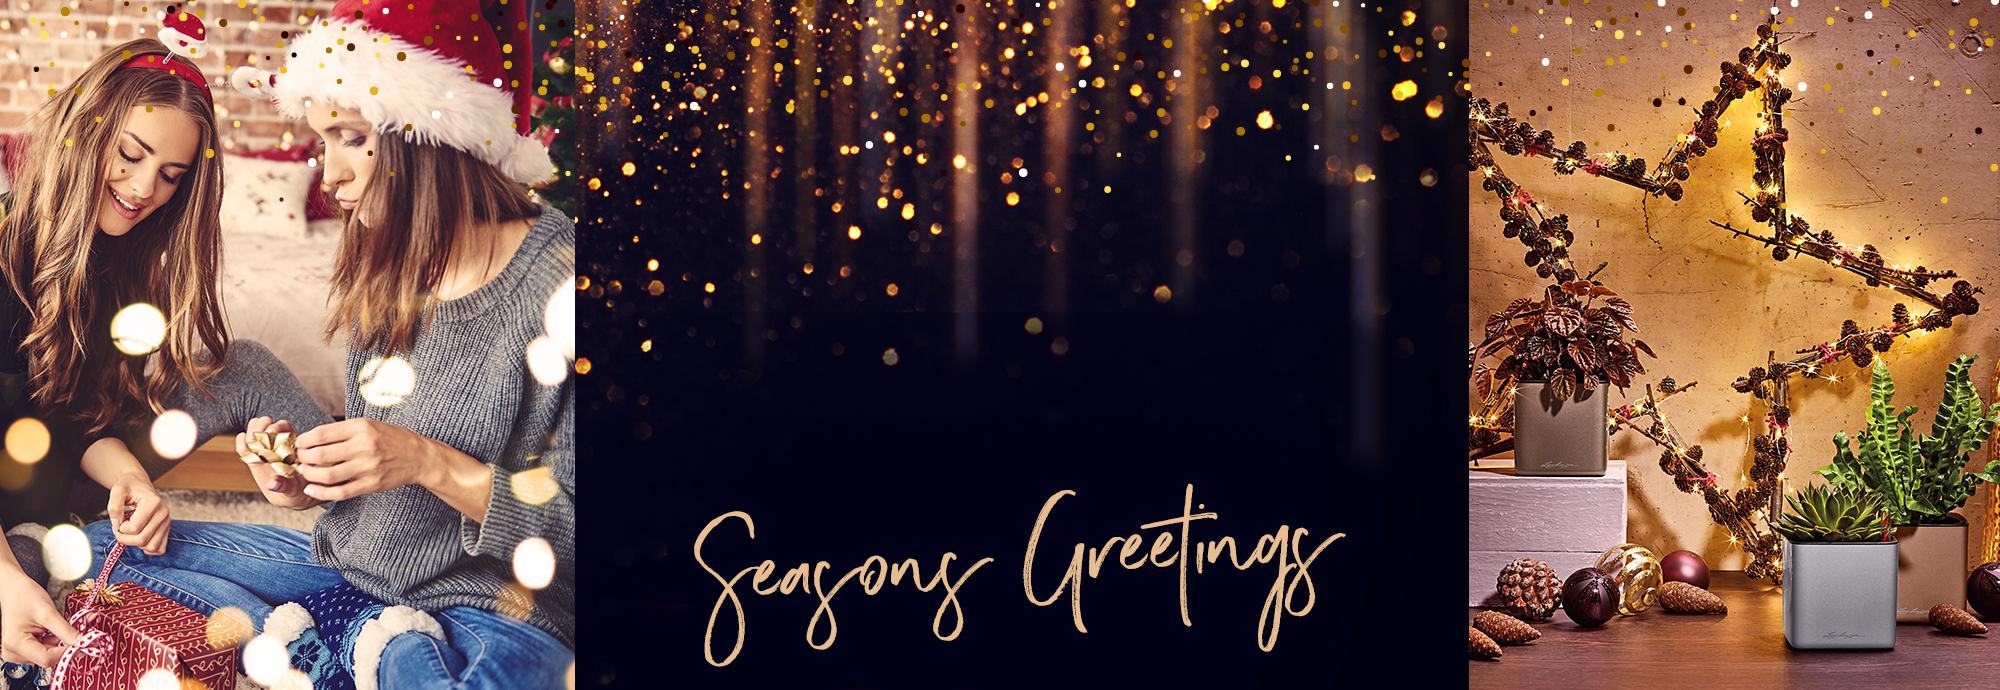 hero_banner_tw_seasons-greetings_de